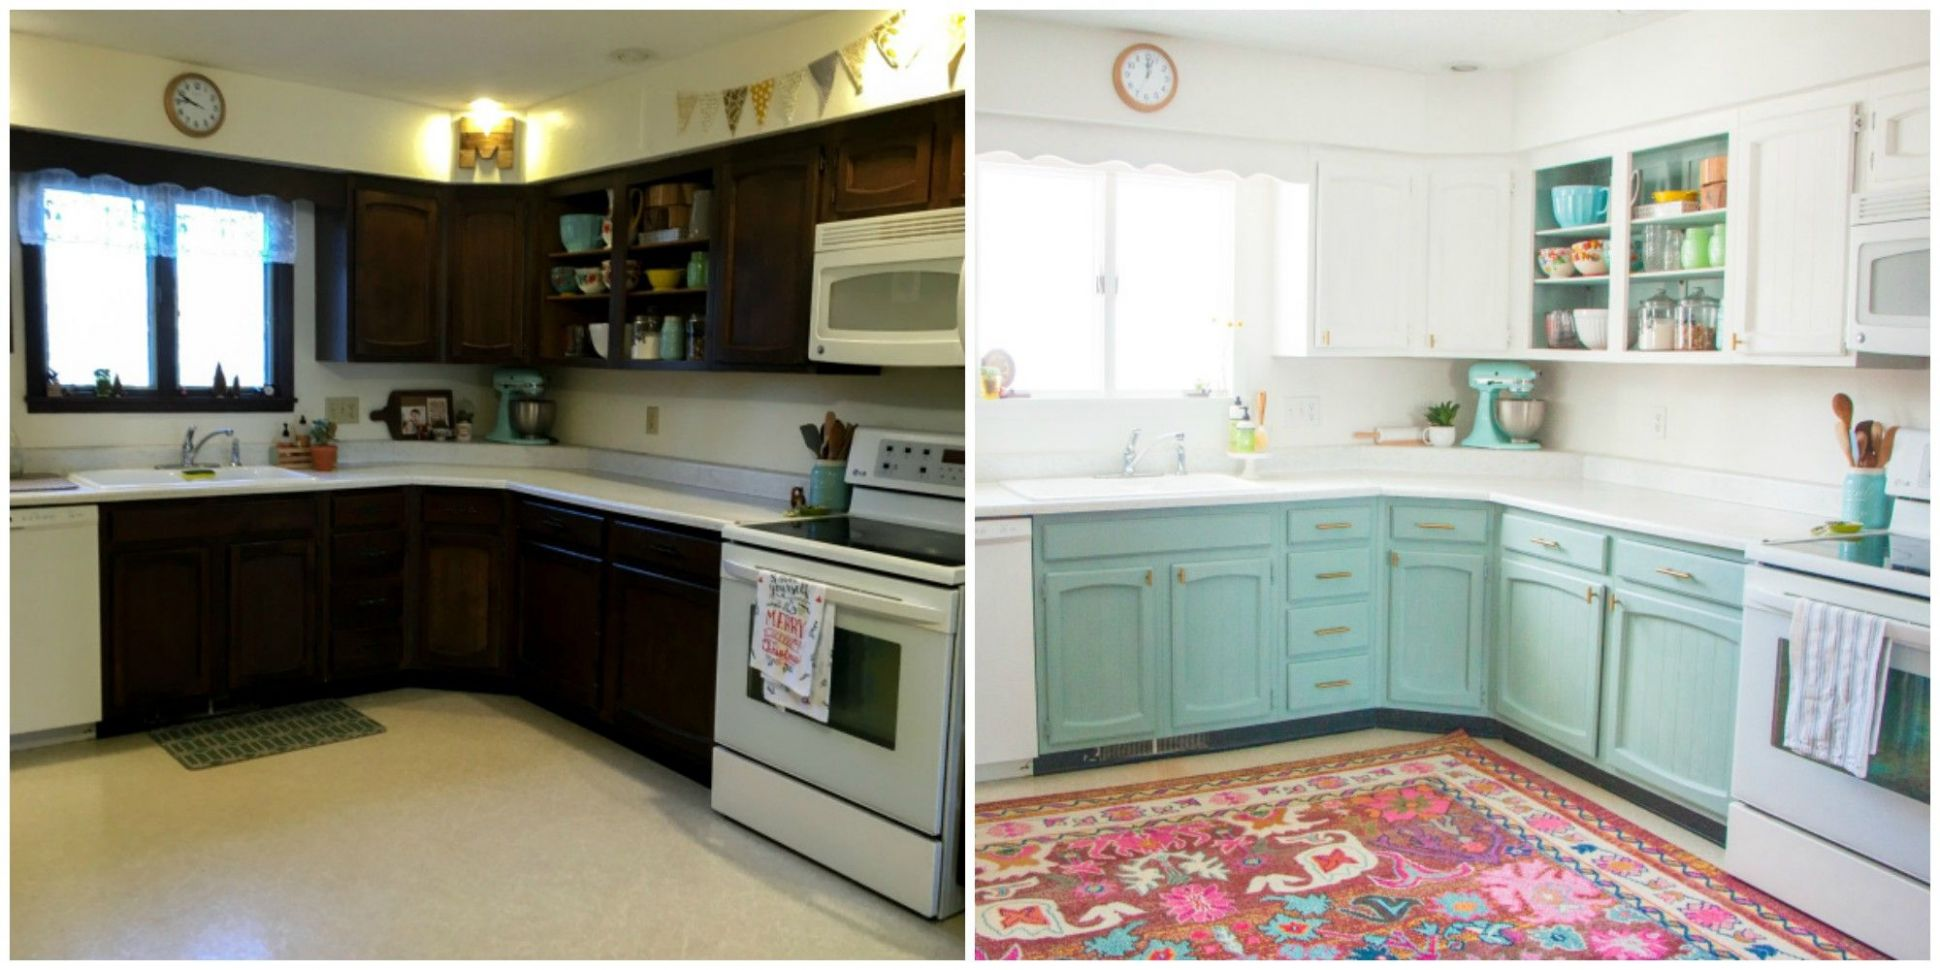 This Bright and Cheery Kitchen Renovation Cost Just $8 - Cheap ...